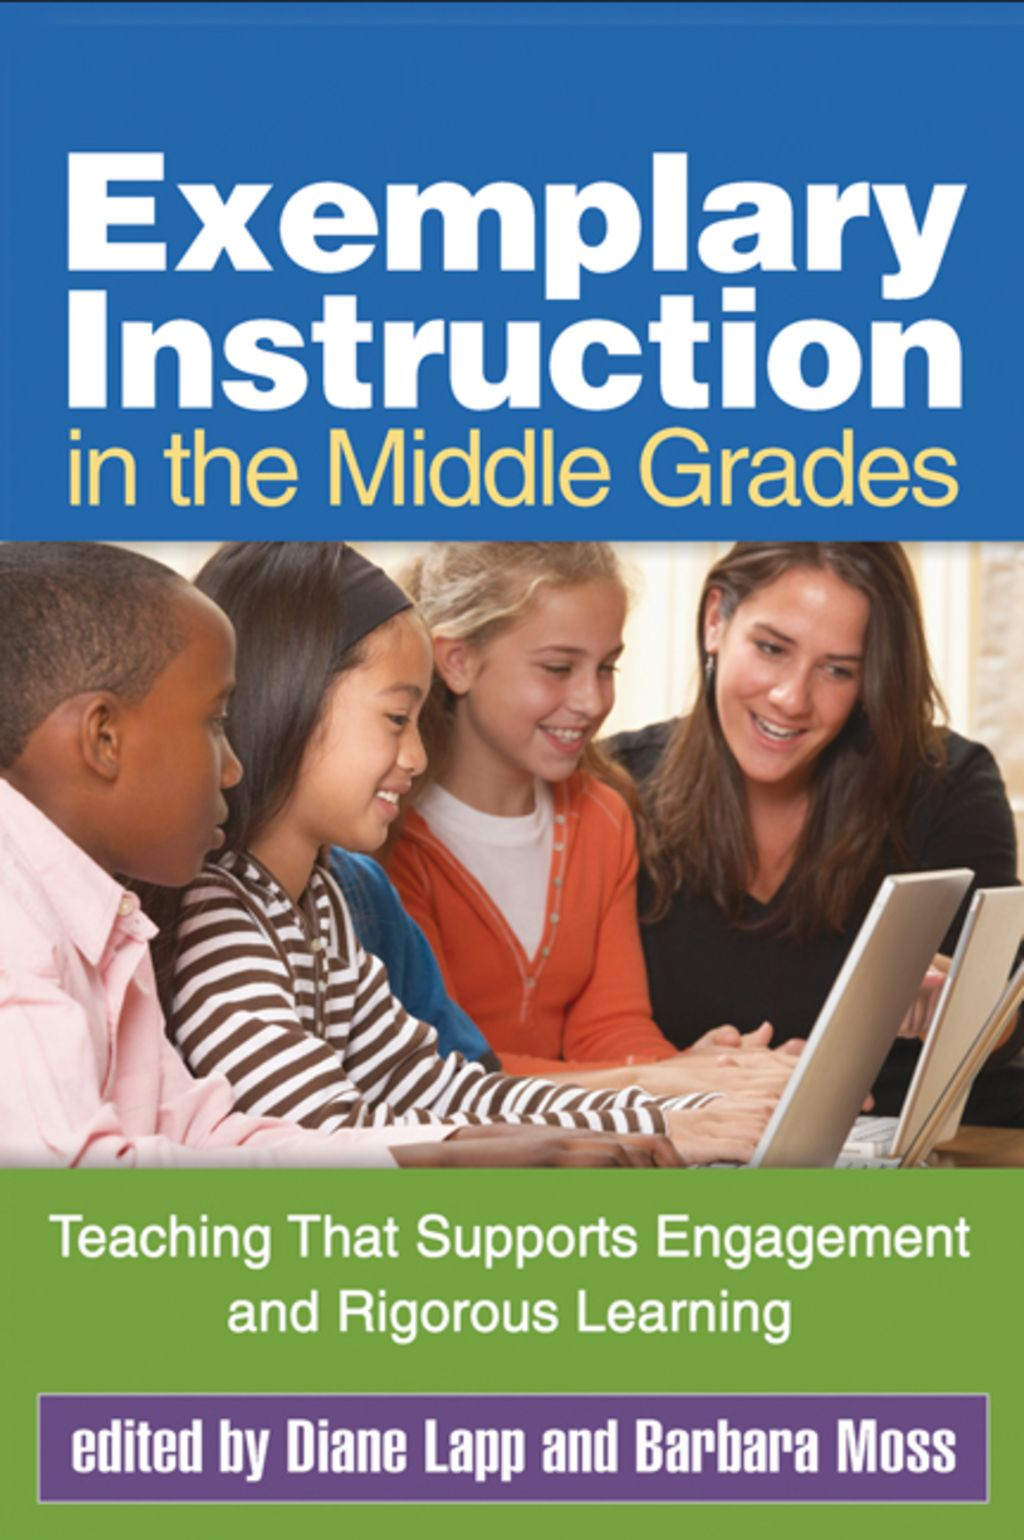 Exemplary Instruction in the Middle Grades (eBook) in 2019